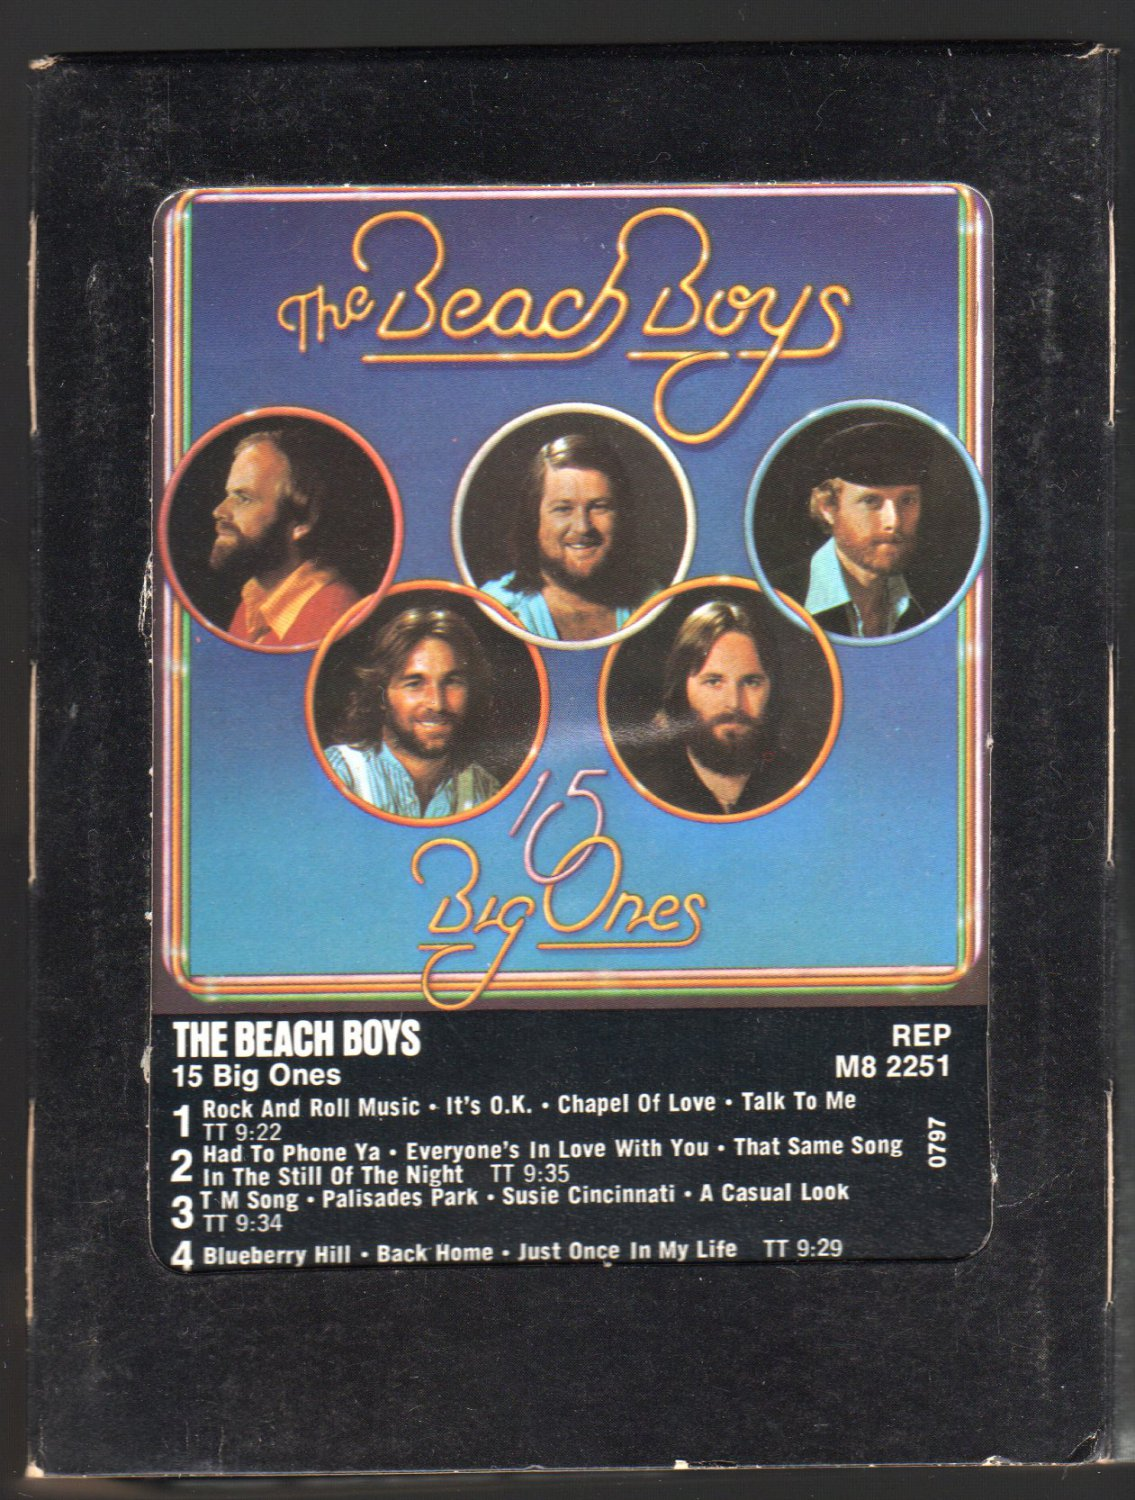 The Beach Boys - 15 Big Ones 1976 WB REPRISE A43 8-TRACK TAPE